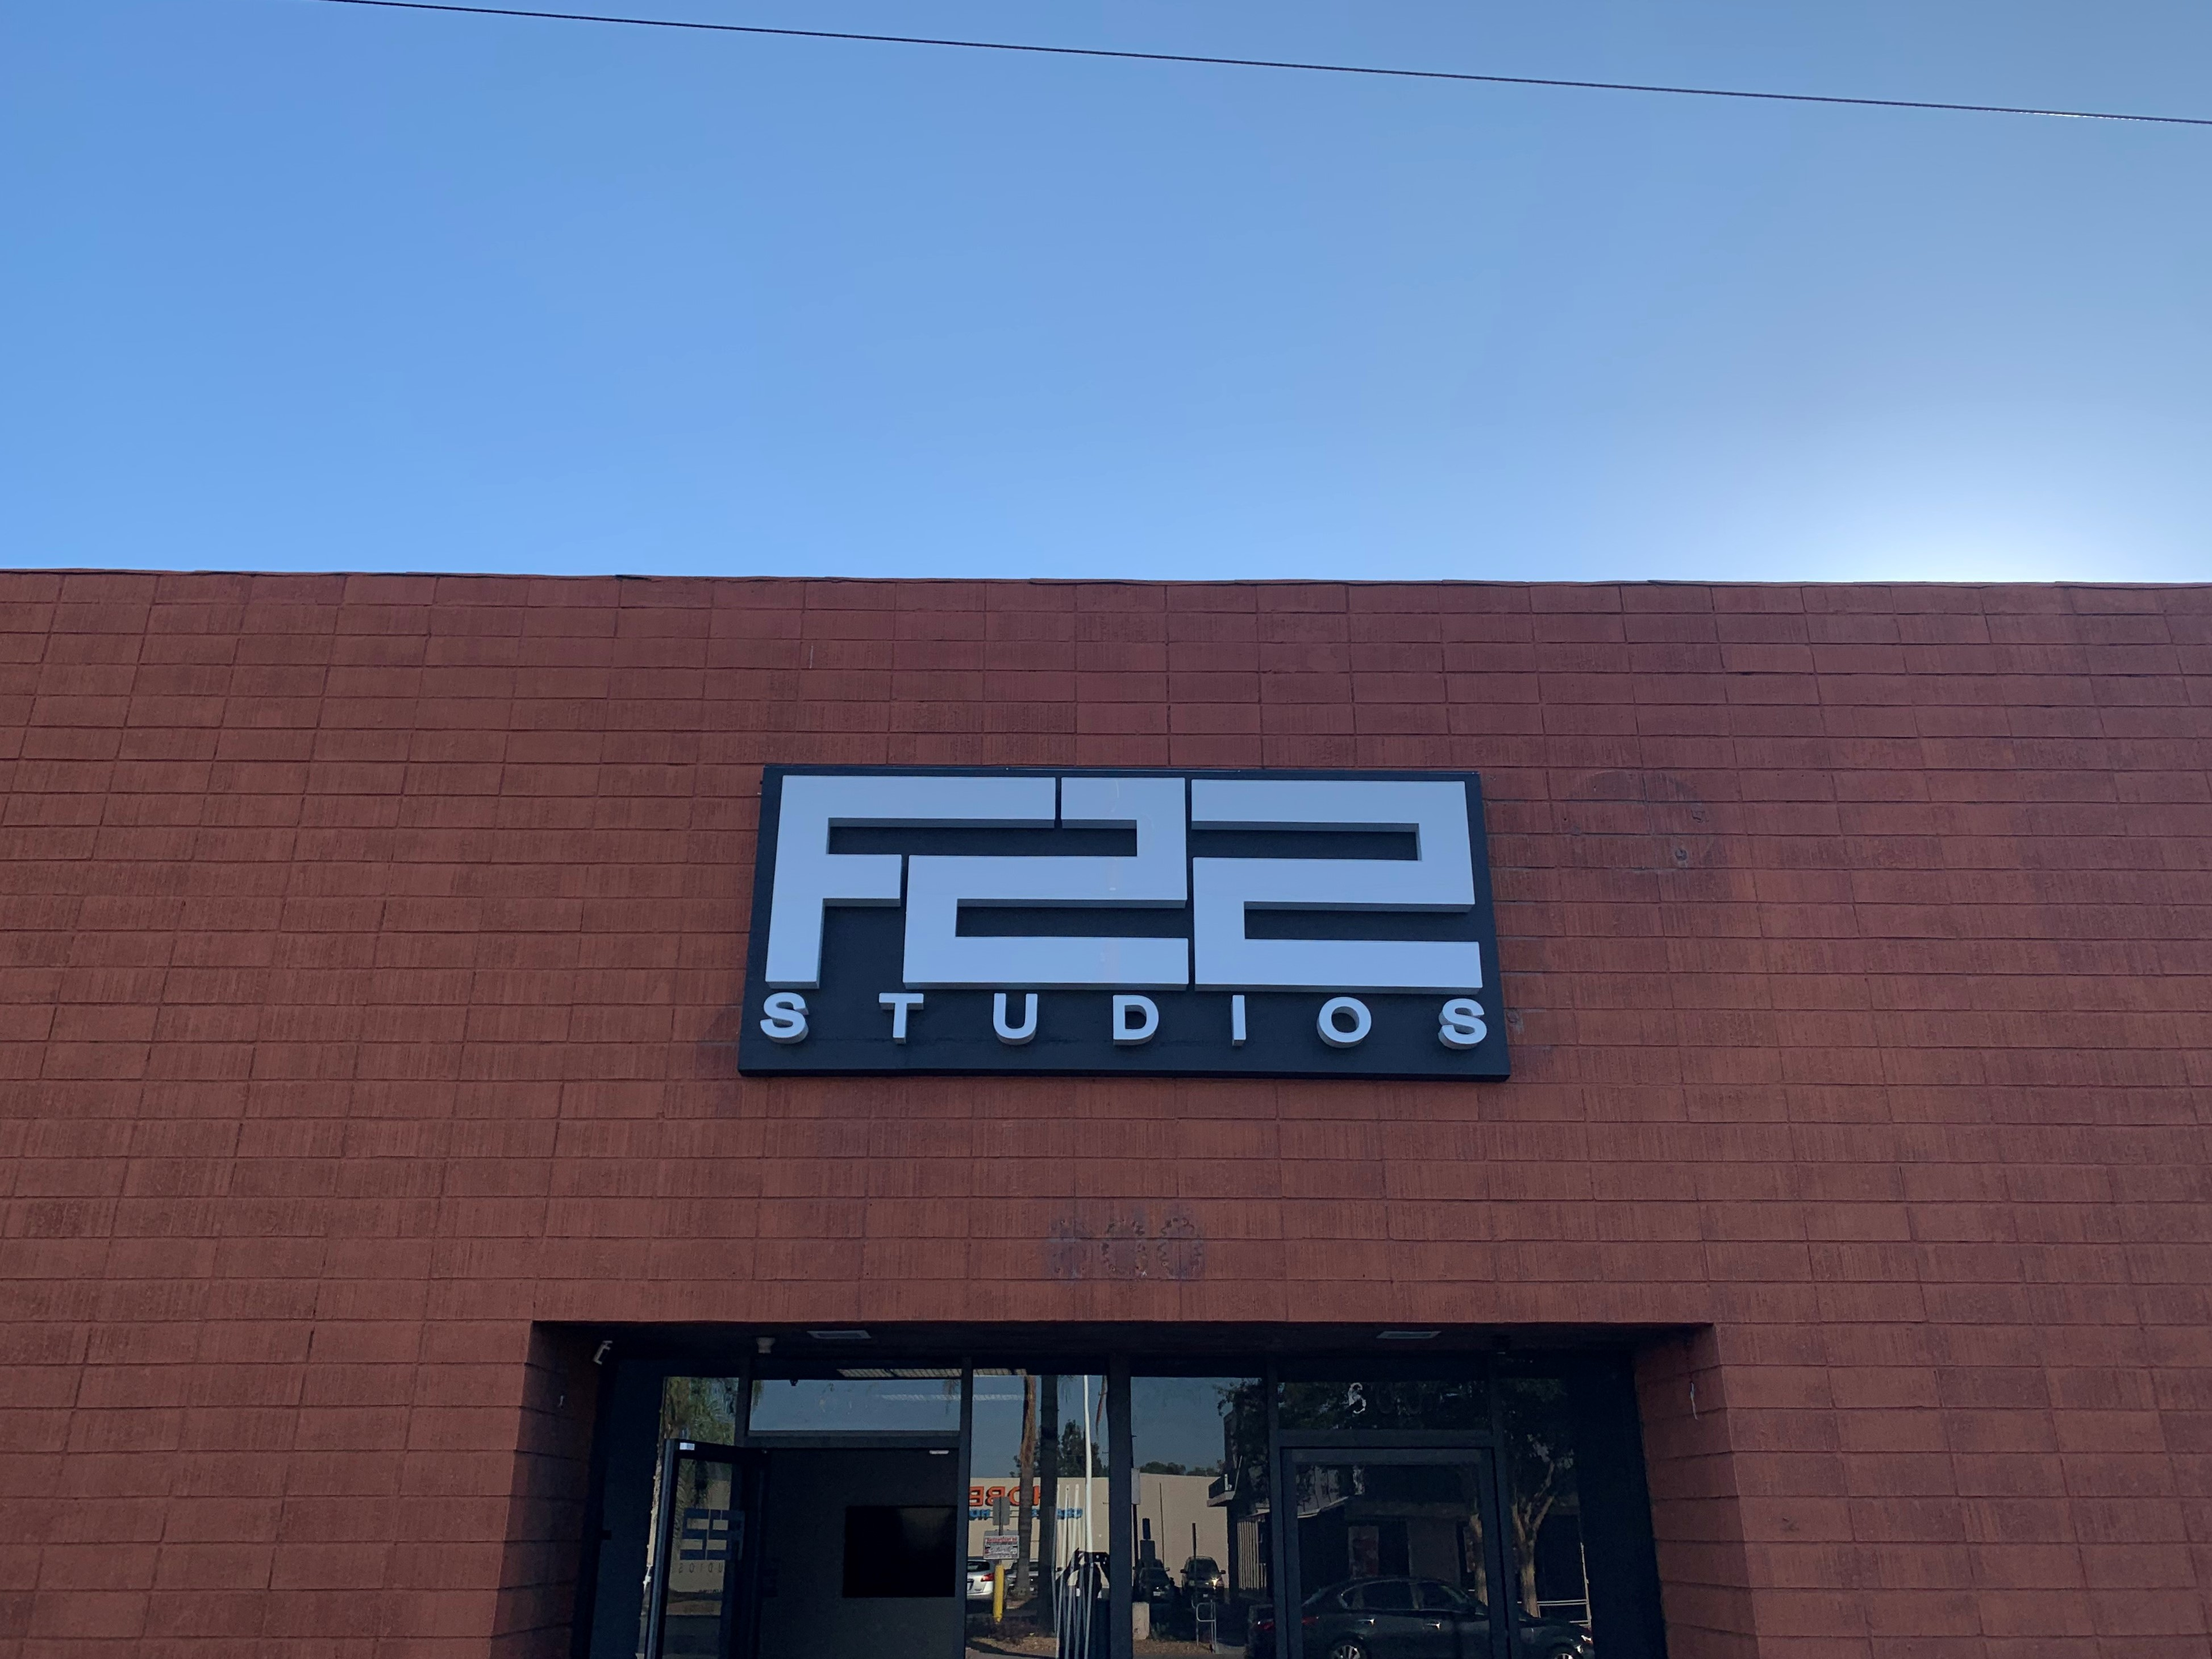 Businesses in the film industry need impressive signage, such as these building channel letters we made for F22 Studios' Burbank branch.